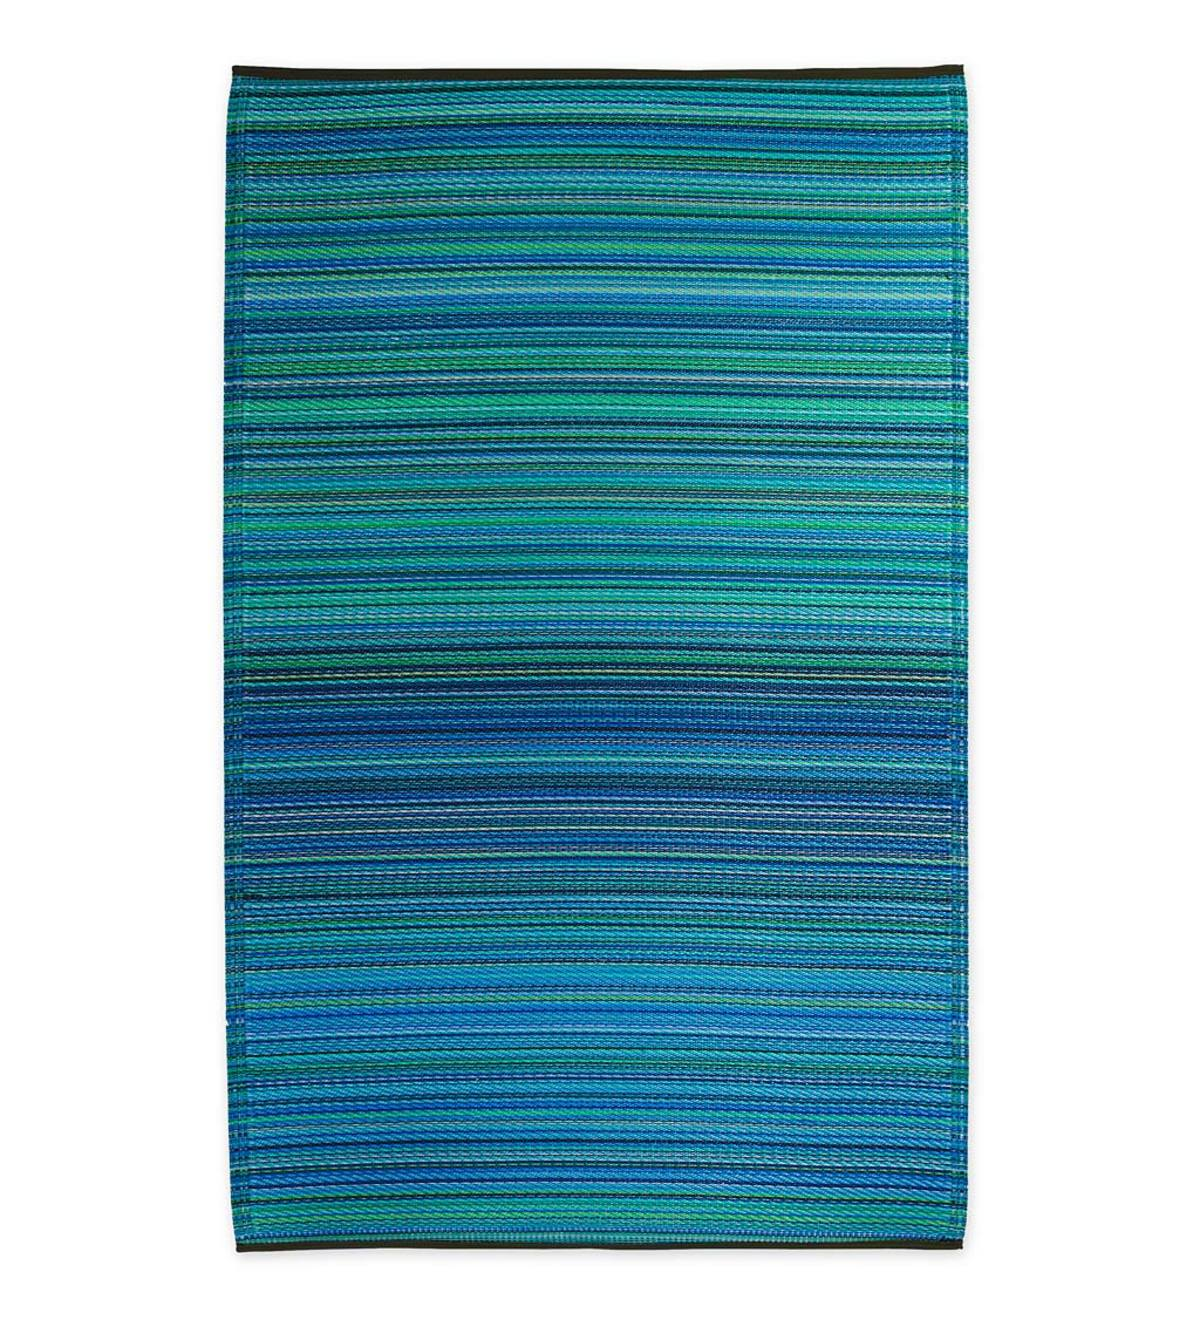 Reversible&Recycled Indoor/Outdoor Rug Cancun Style - 8x10 - Turquoise